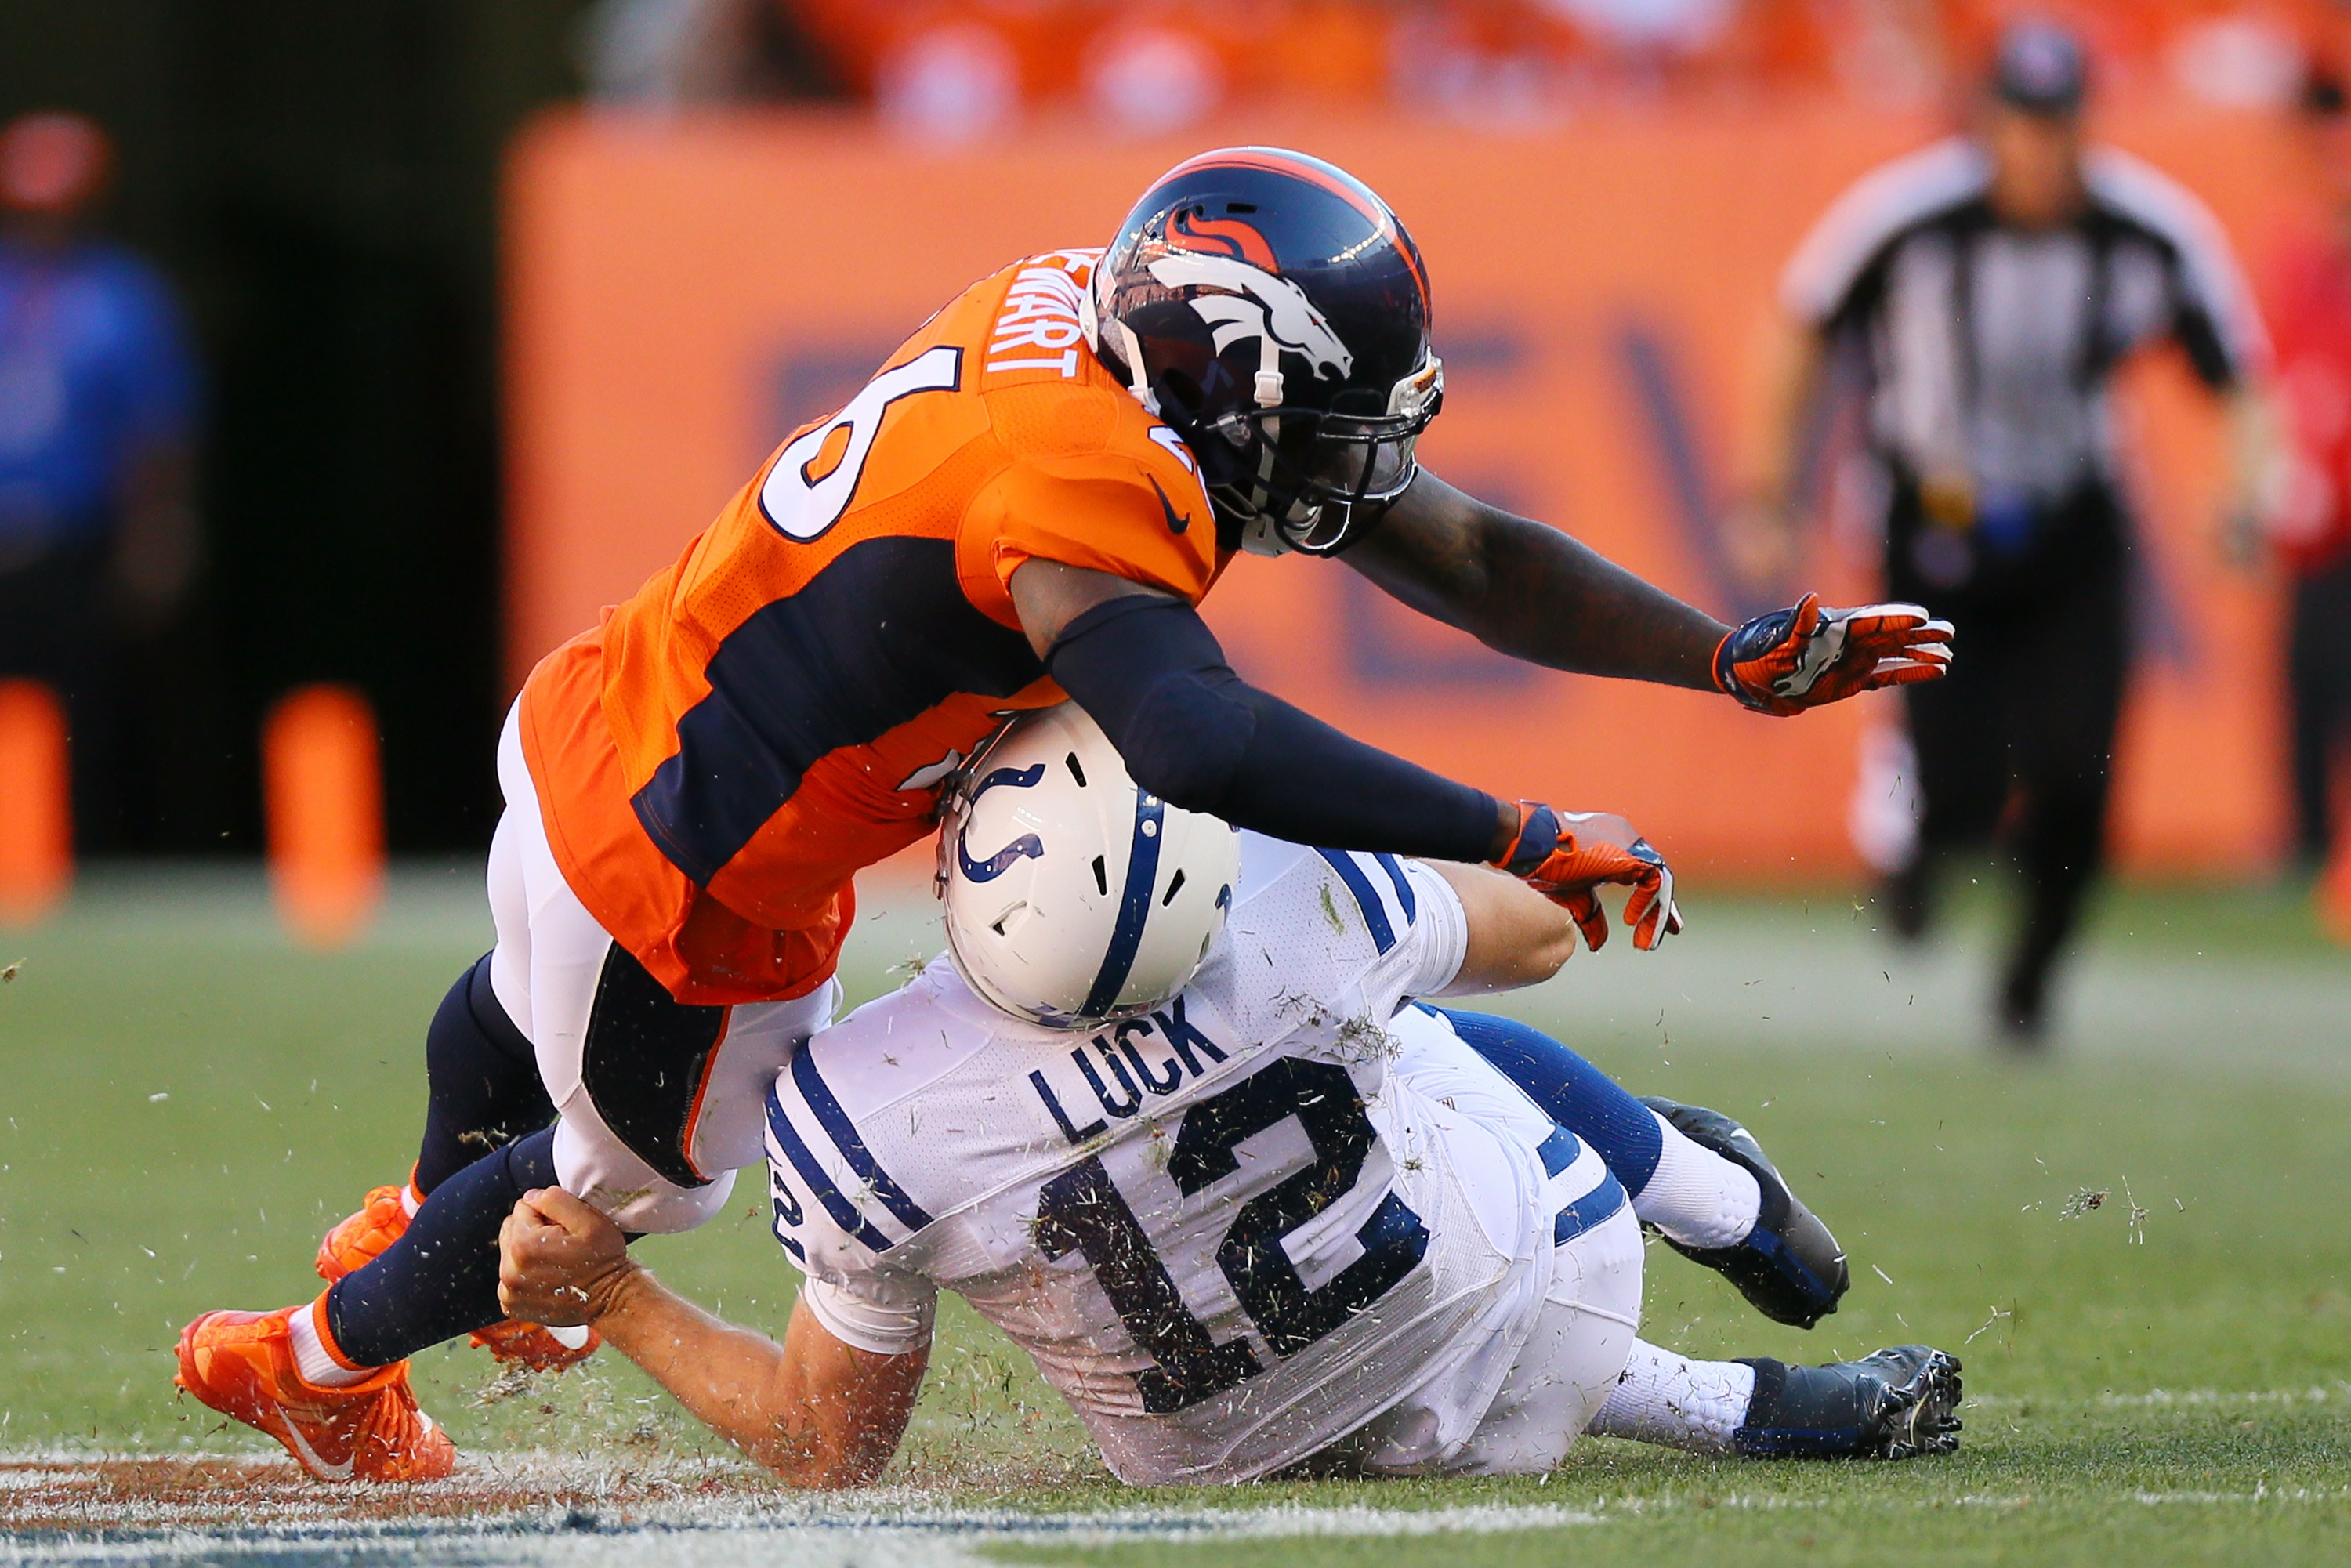 DENVER, CO - SEPTEMBER 18: Free safety Darian Stewart #26 of the Denver Broncos is called for unnecessary roughness for tackling quarterback Andrew Luck #12 of the Indianapolis Colts as he slides for a first down in the fourth quarter of the game at Sports Authority Field at Mile High on September 18, 2016 in Denver, Colorado. (Photo by Justin Edmonds/Getty Images)